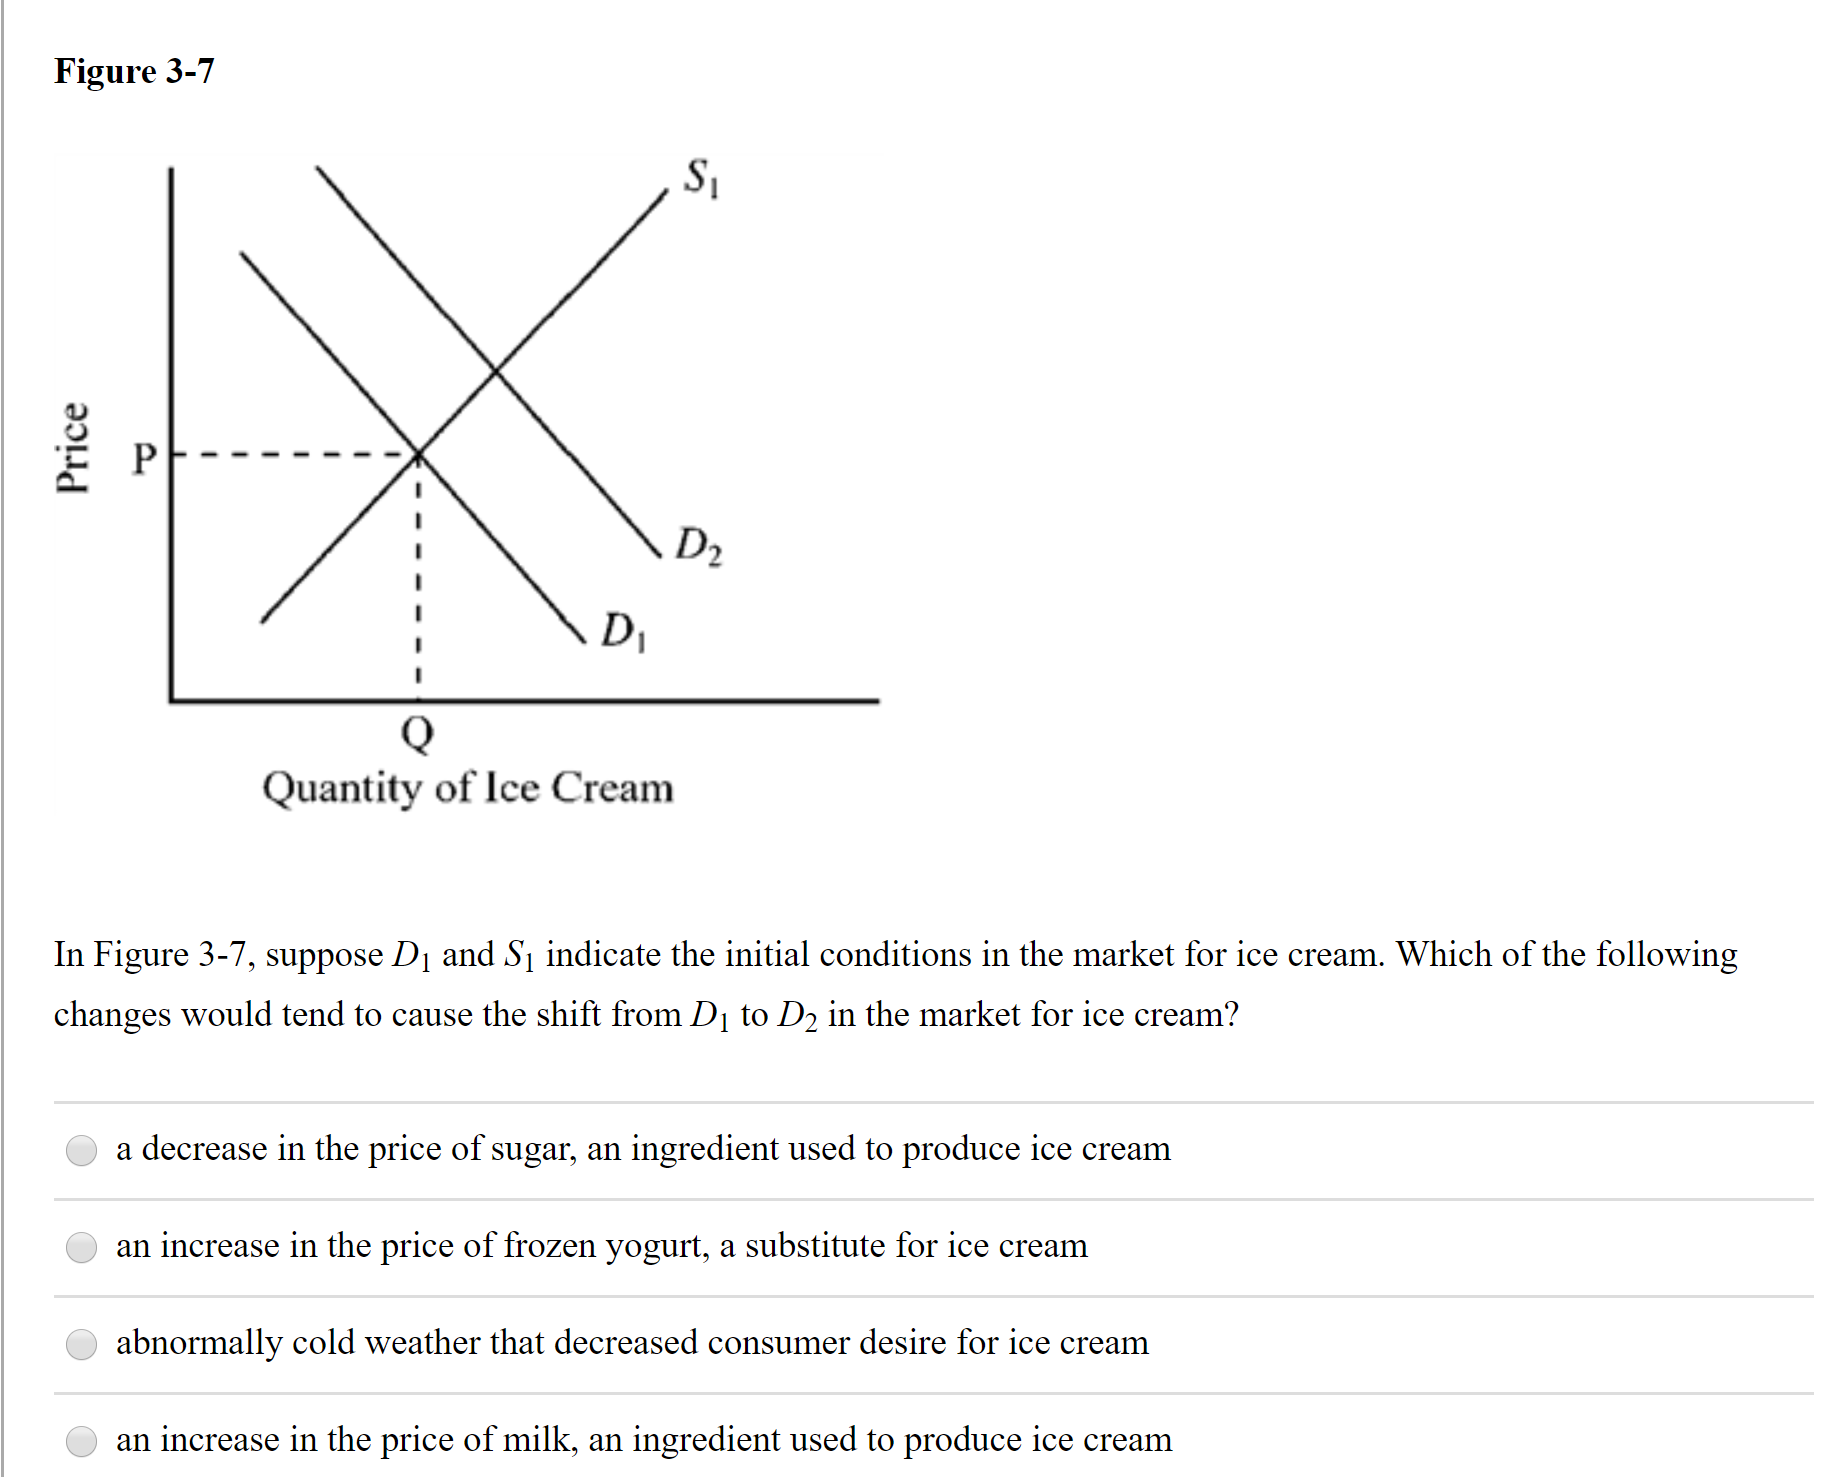 Figure 3-7 D2 D, Quantity of lce Cream In Figure 3-7, suppose D1 and S1 indicate the initial conditions in the market for ice cream. Which of the following changes would tend to cause the shift from D1 to D2 in the market for ice cream? a decrease in the price of sugar, an ingredient used to produce ice cream an increase in the price of frozen yogurt, a substitute for ice cream abnormally cold weather that decreased consumer desire for ice cream an increase in the price of milk, an ingredient used to produce ice cream Price